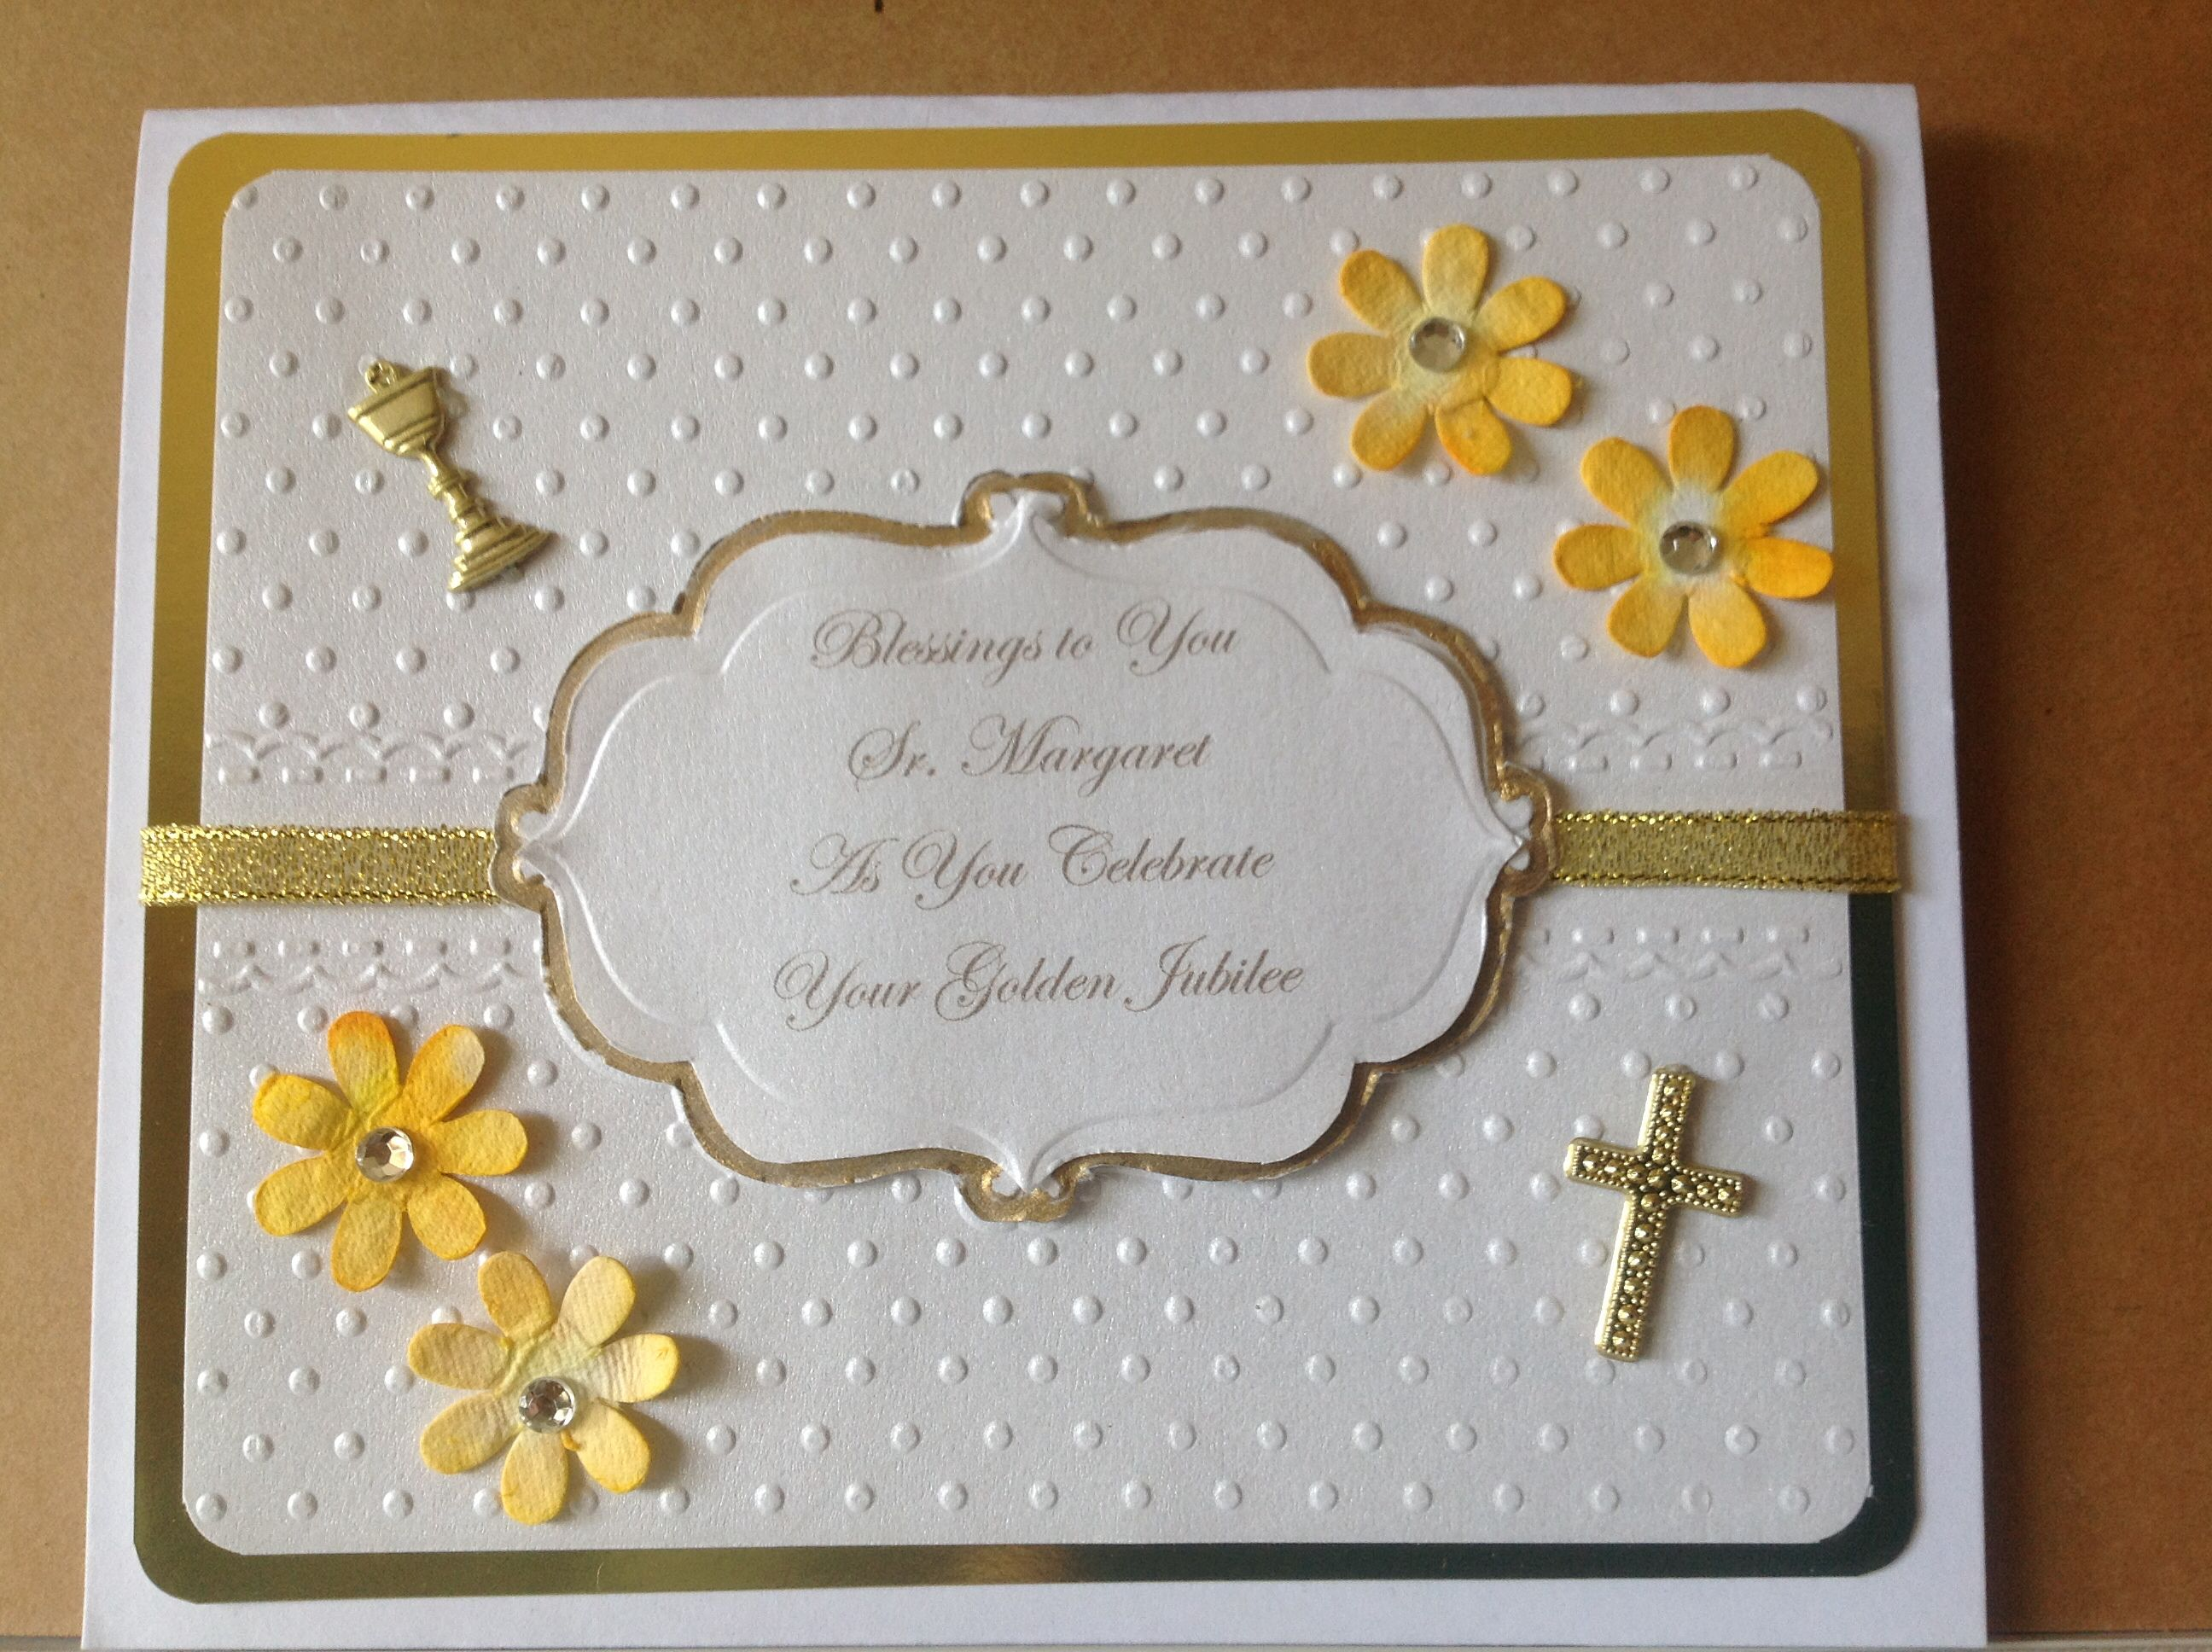 This was a special request for a nuns golden jubilee my handmade this was a special request for a nuns golden jubilee kristyandbryce Choice Image